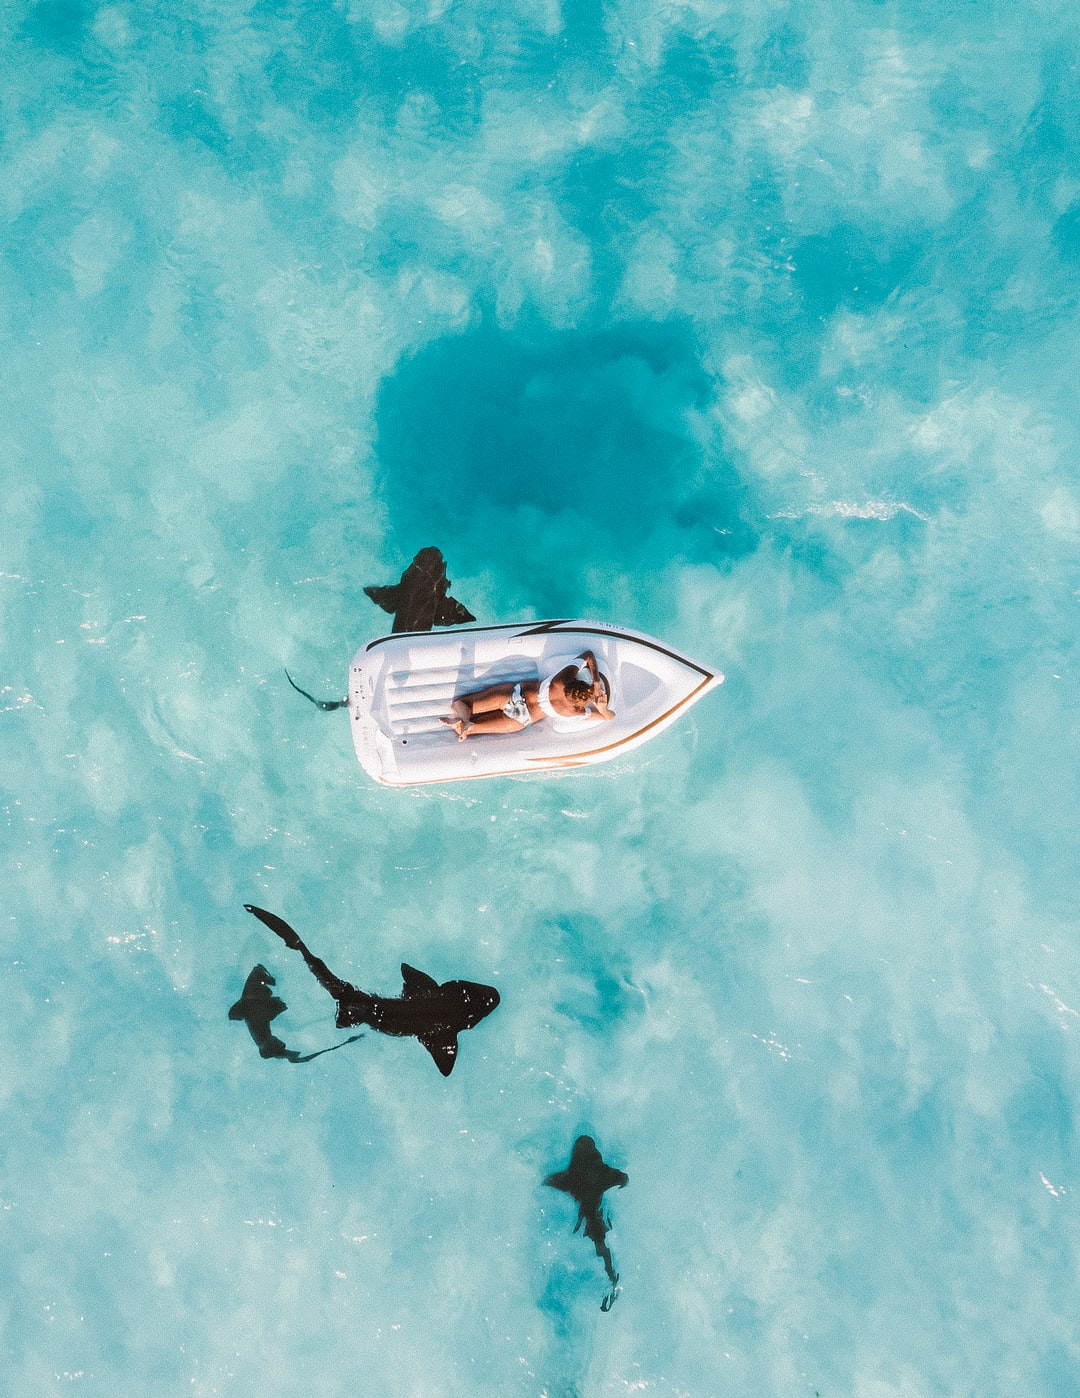 Floating over nurse sharks in the Bahamas on  Great Exuma. Cameras do not do the blue luminescence of the water here justice.